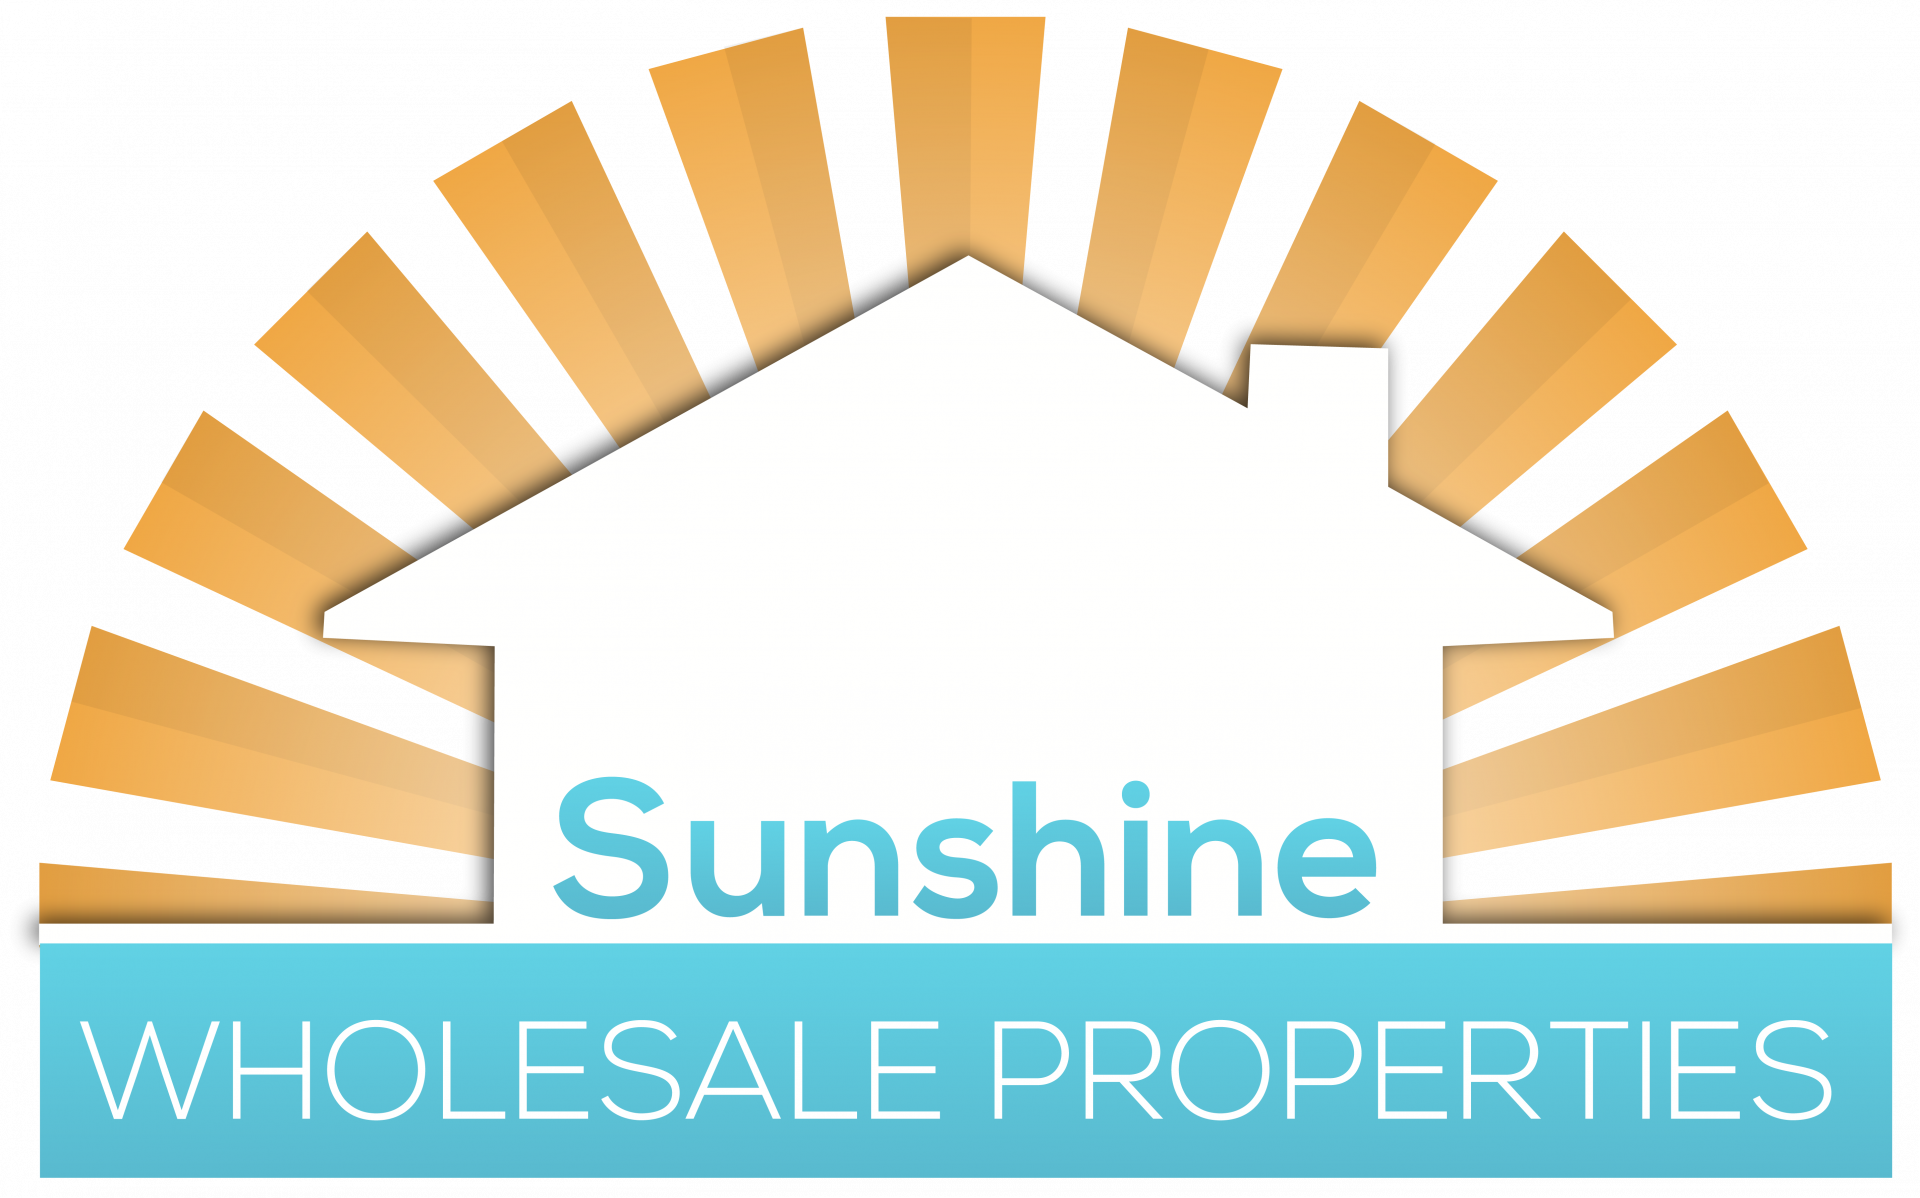 Sunshine Wholesale Properties logo